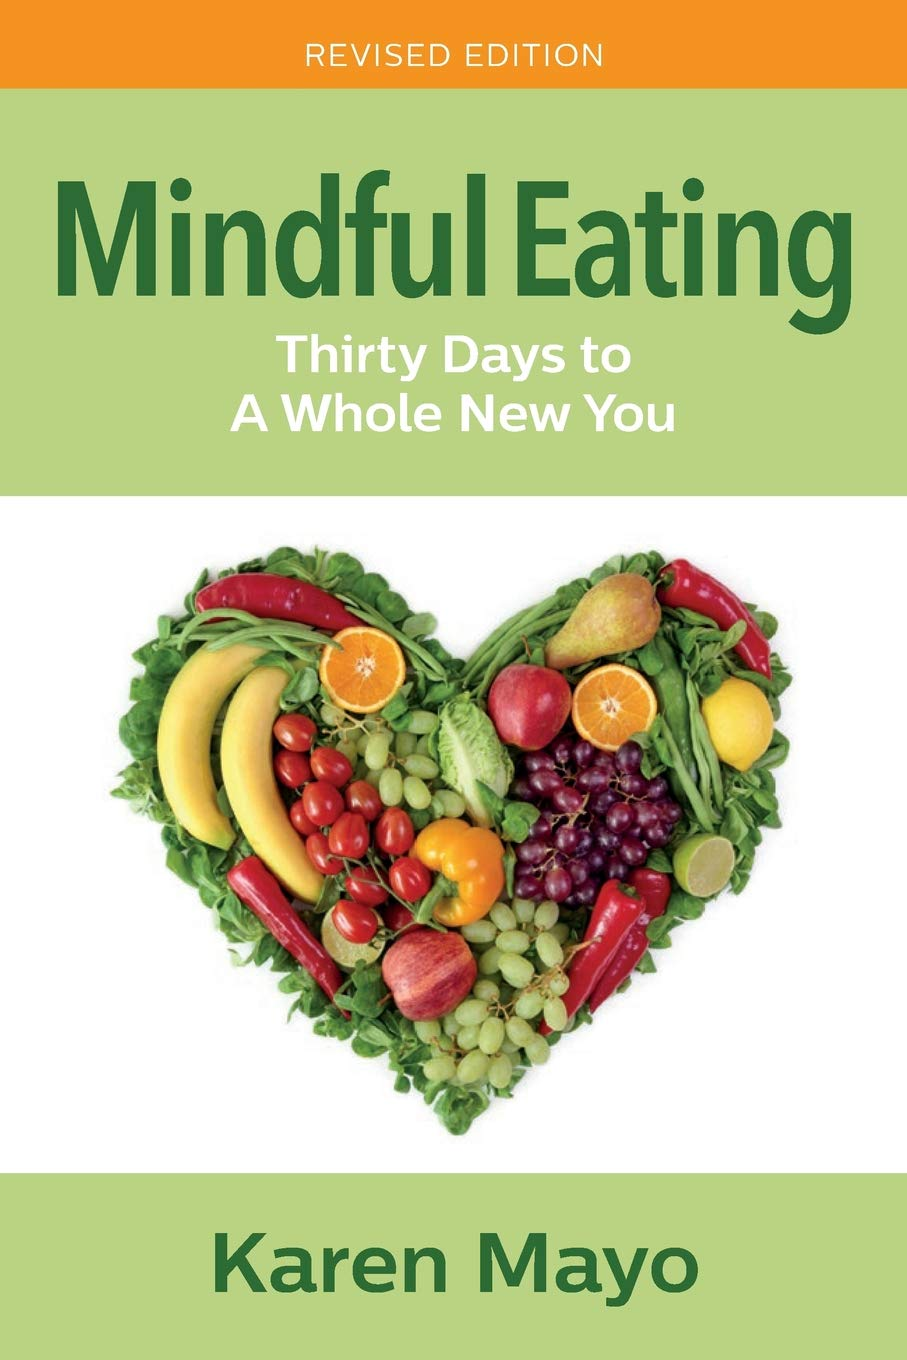 Mindful Eating Adhd And Nutrition >> Mindful Eating Thirty Days To A Whole New You Karen Mayo